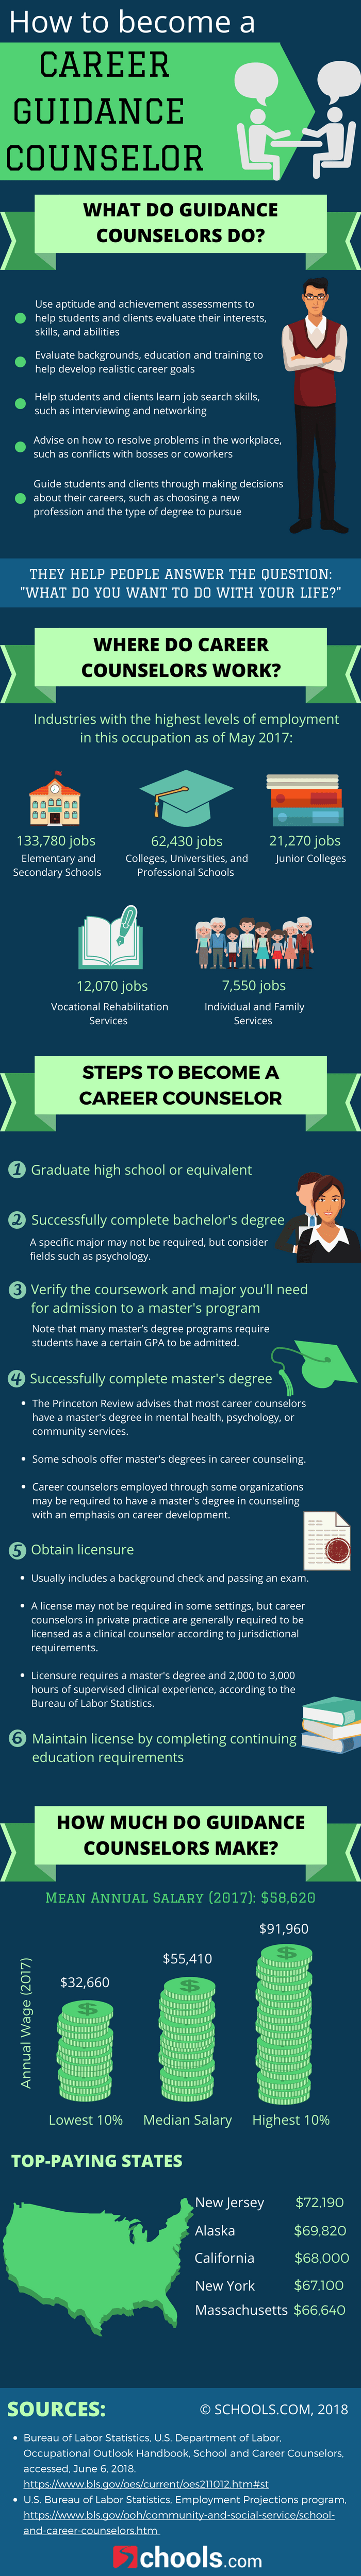 how to become a career guidance counselor